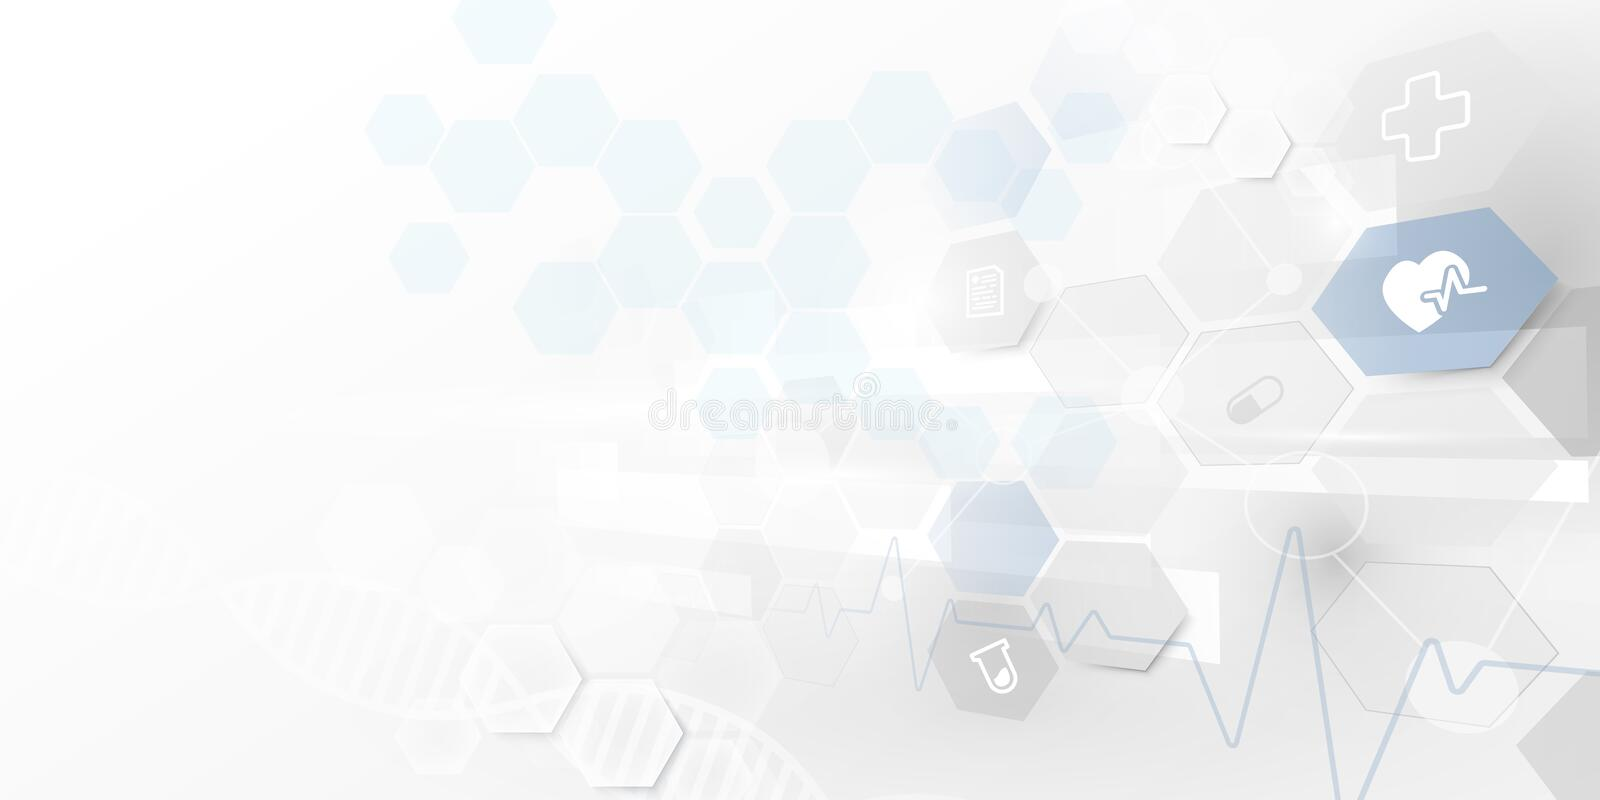 Abstract geometric technology digital hi tech. Medicine and science concept background. Medical Icons vector illustration